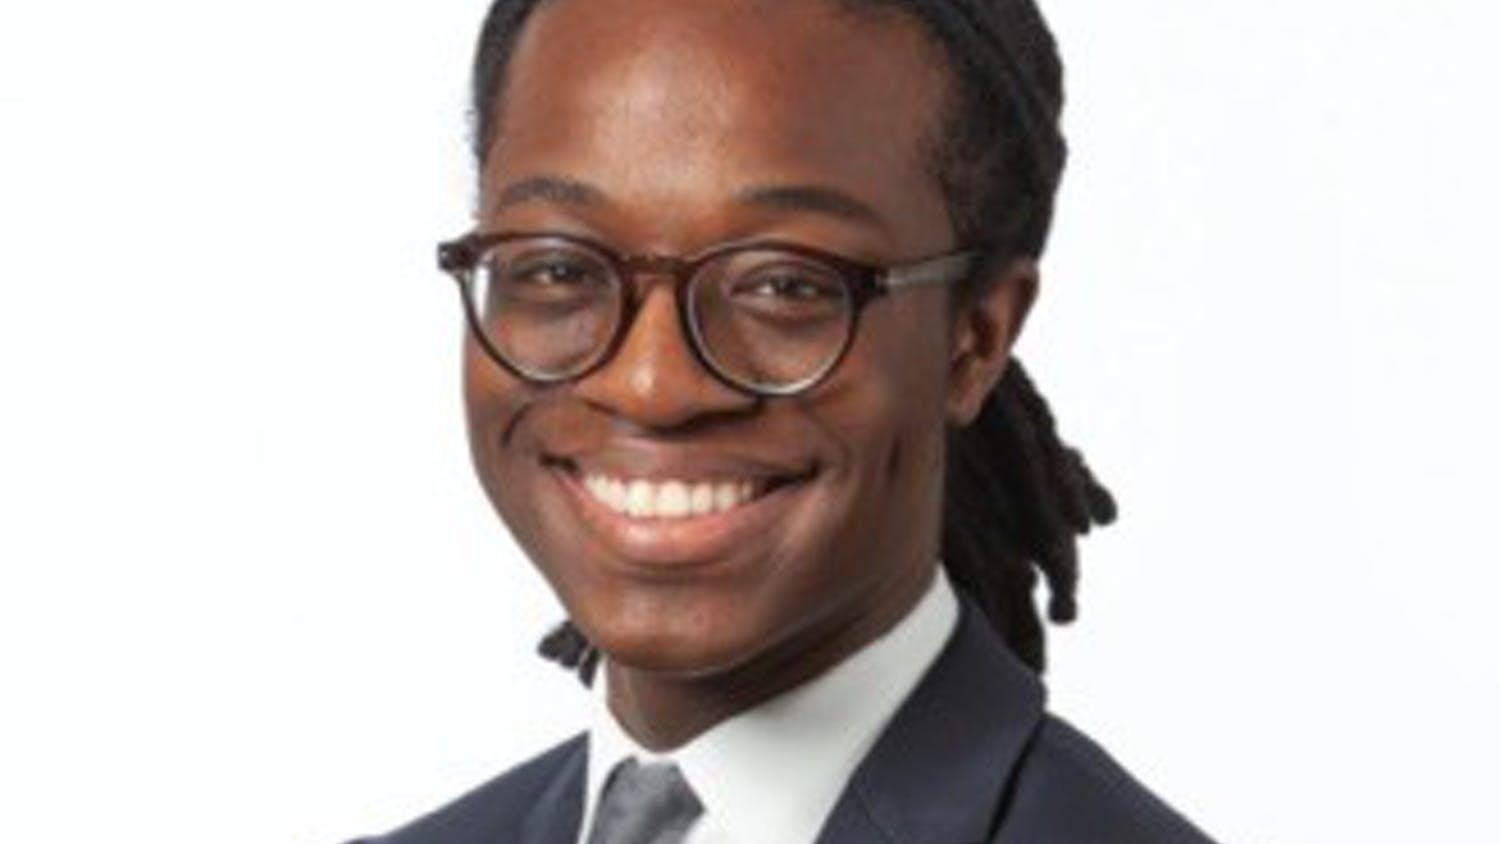 Rising junior Clay Morris will be the DTH's 2021-22 Diversity, Equity and Inclusion Officer.